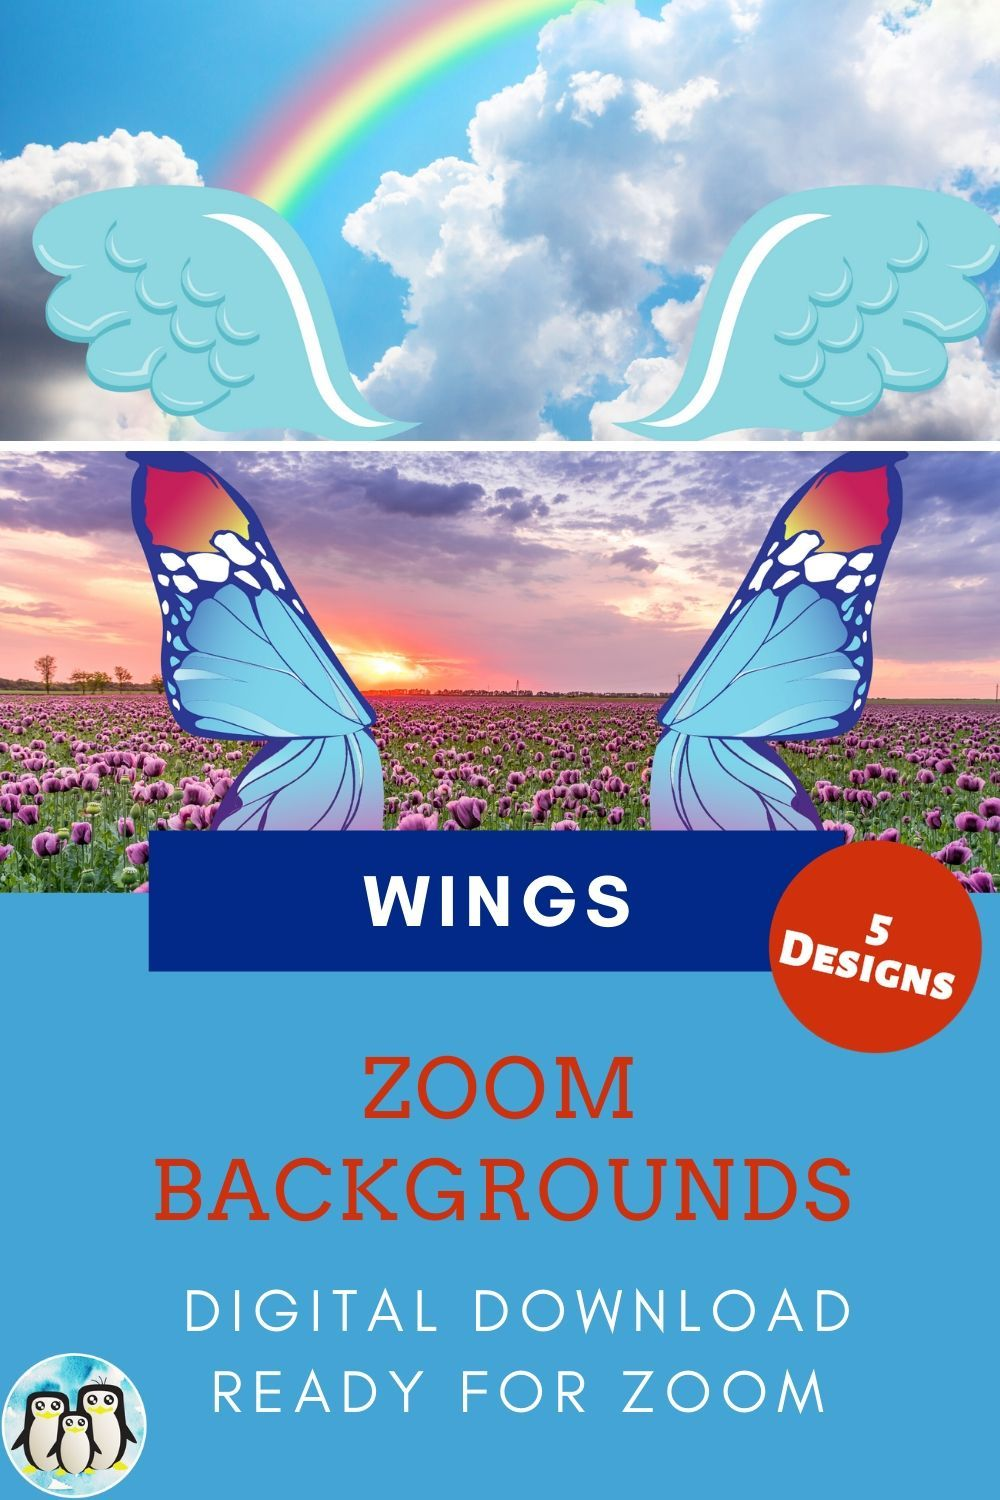 Zoom Virtual Background Bundle Of 5 Wings Inspired Designs Zoom Background Virtual Background Video Conference Backgrounds Cute Gifts For Friends Background Baby Shower Gender Reveal